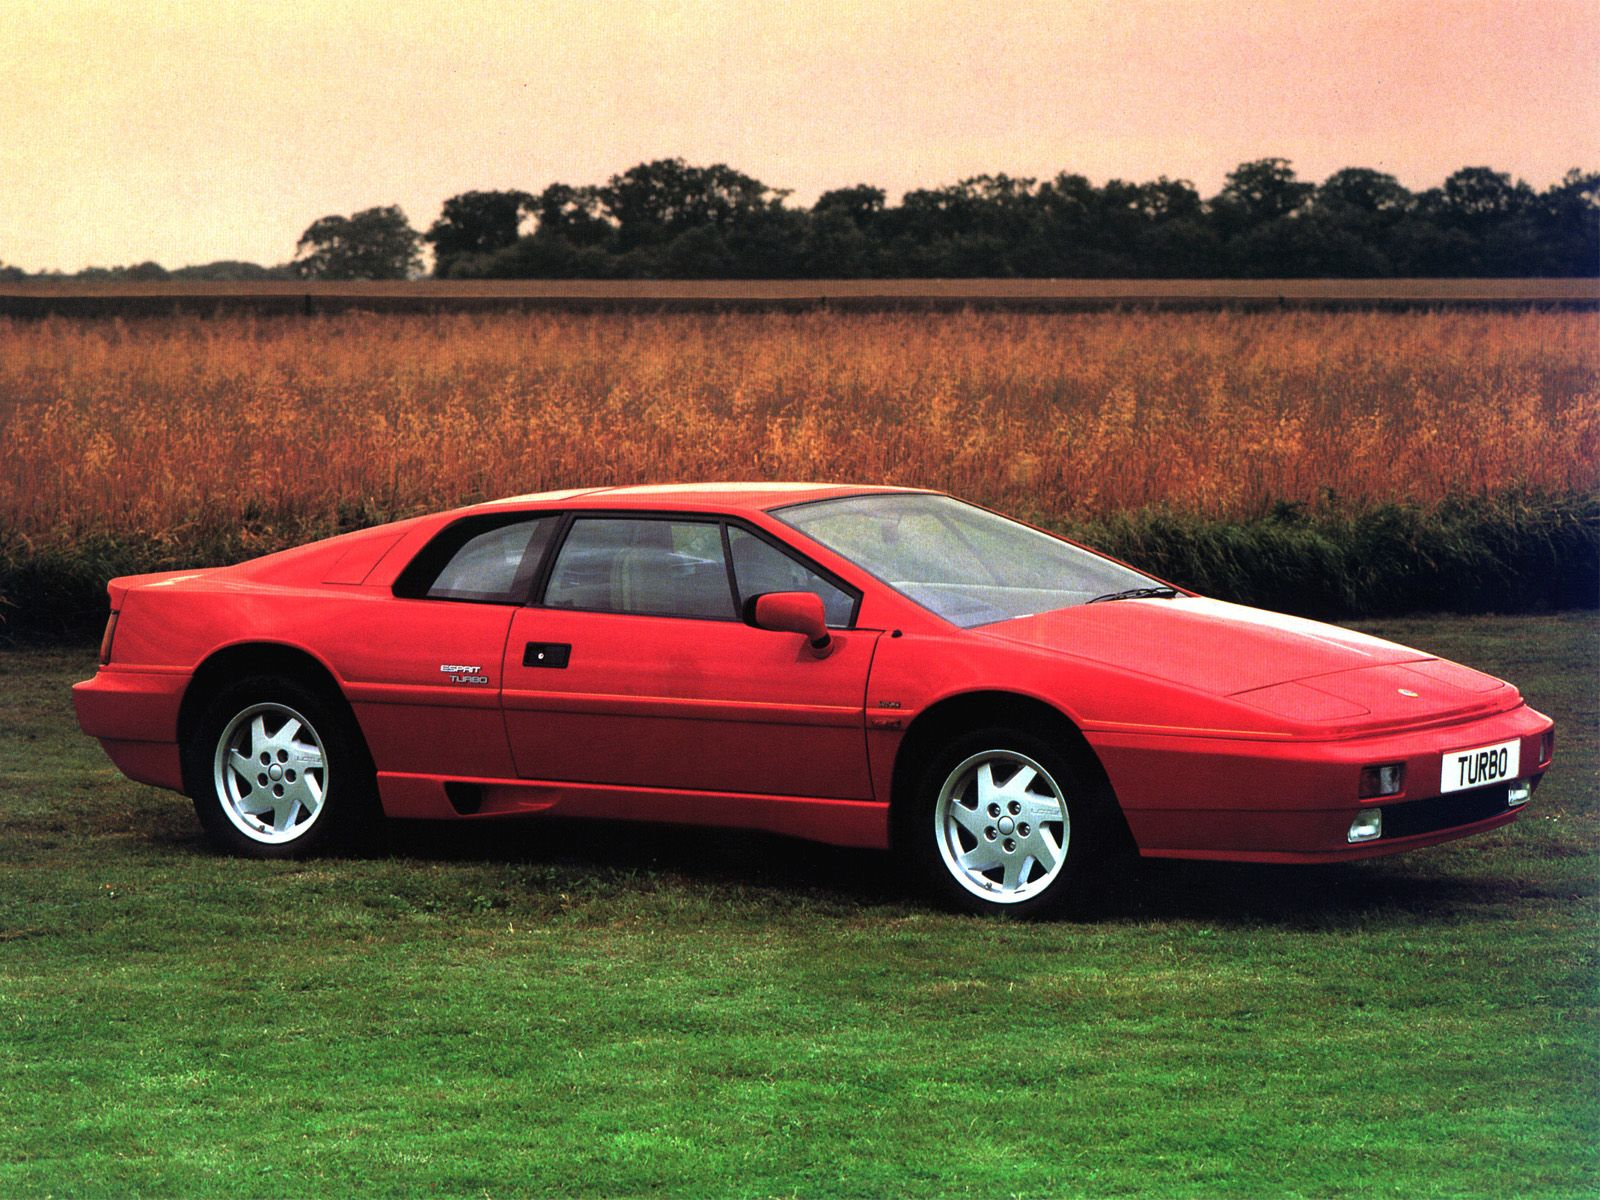 The 1980 Lotus Esprit Turbo Right Now 12 30 Only Dealer Near Middle Tennessee Is In Atlanta Ga They Also Lamborghini S